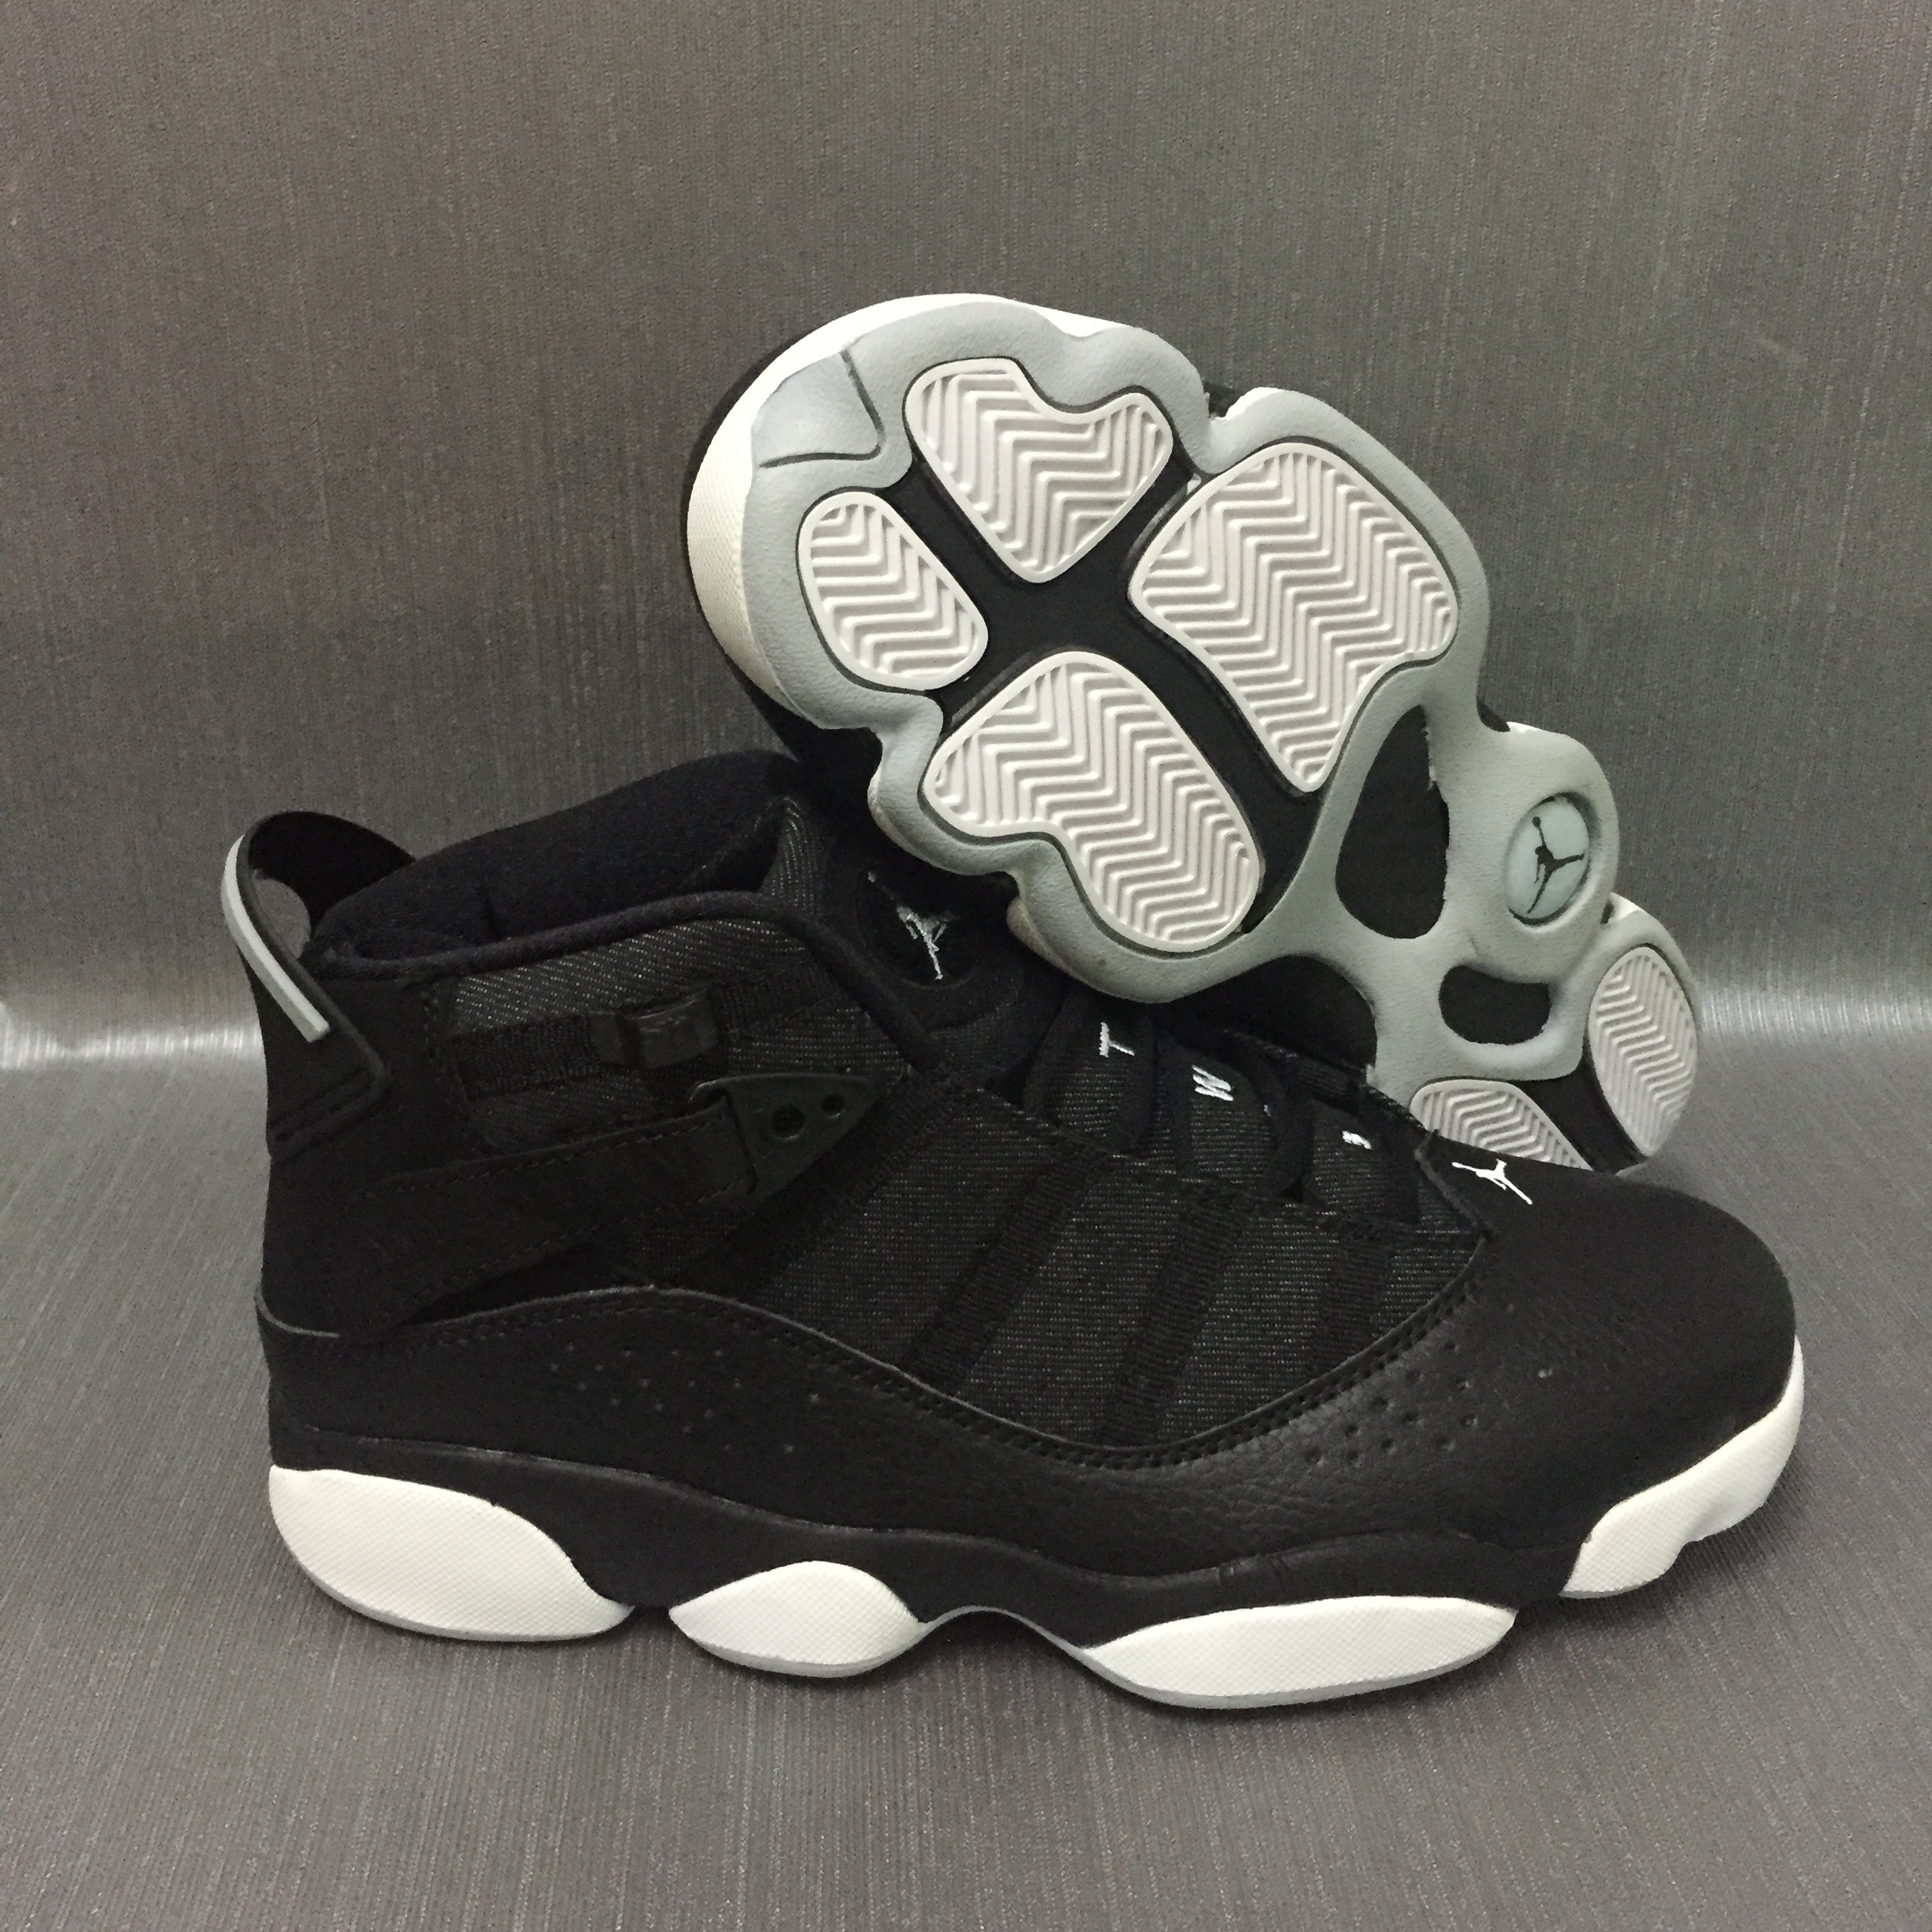 Cheap Air Jordans 6 Champion Black Grey White SHoes